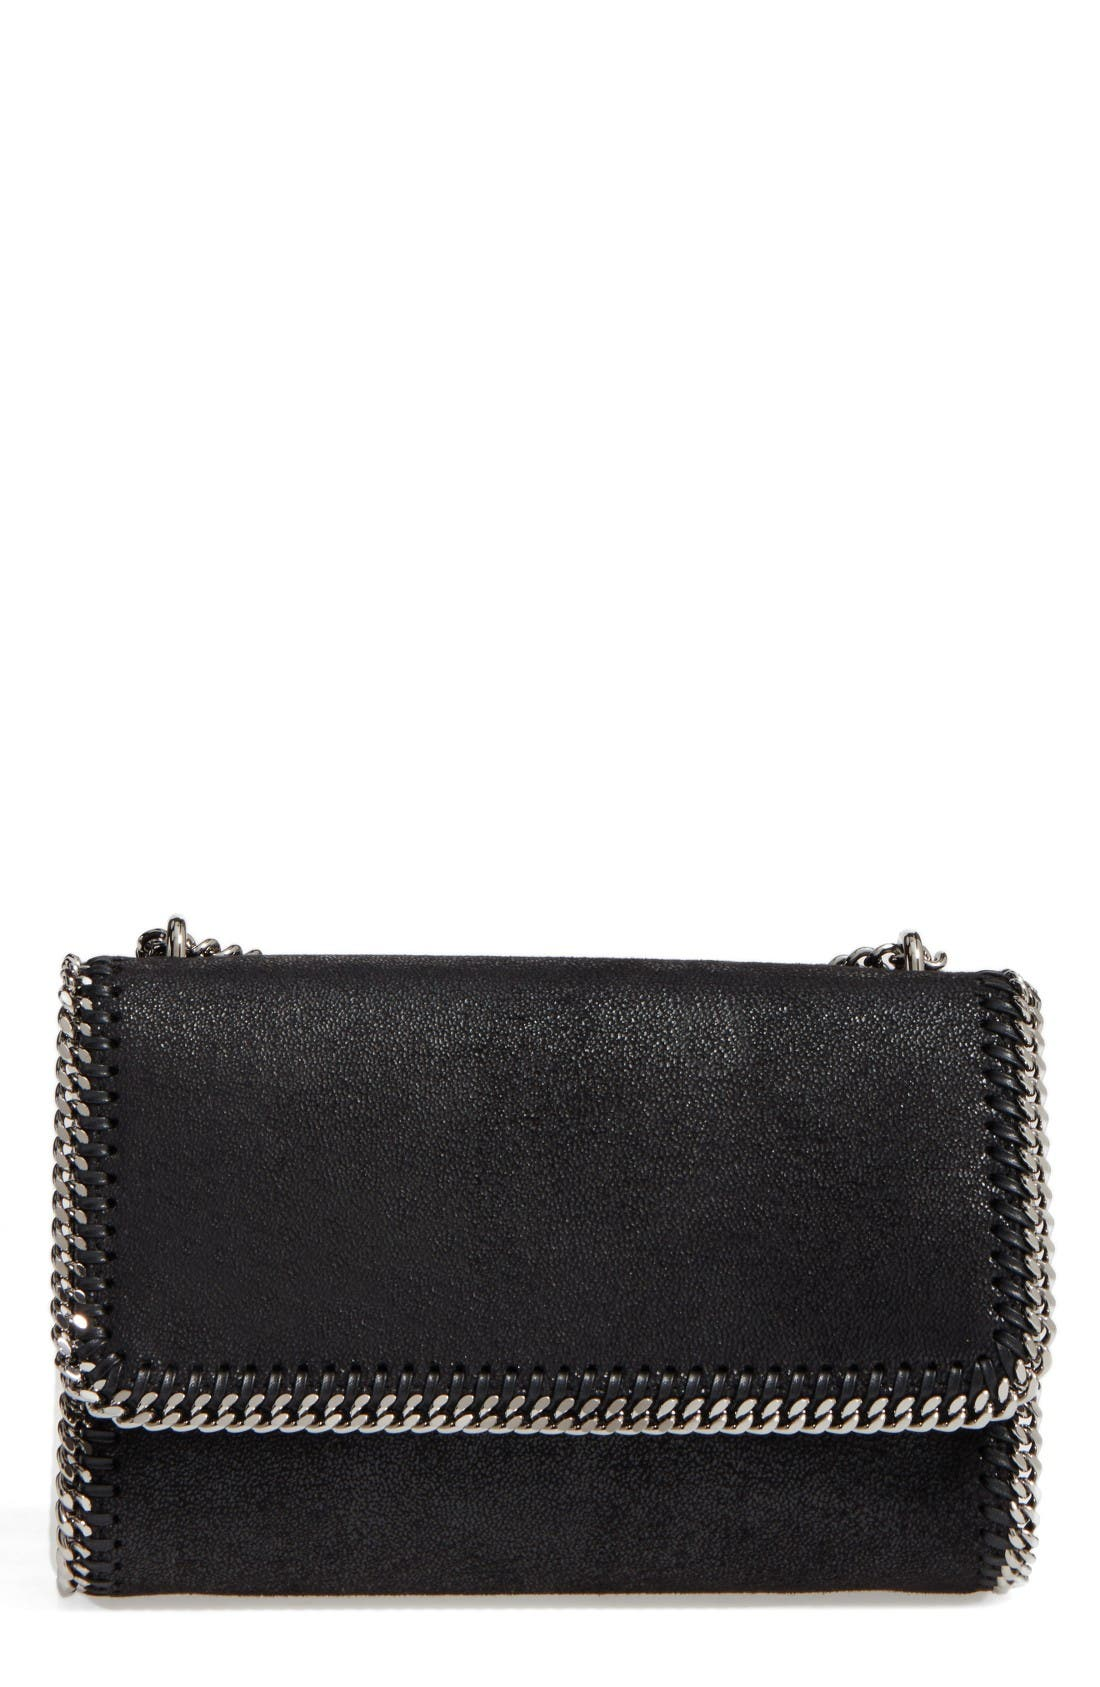 Stella McCartney Shaggy Deer Flap Shoulder Bag